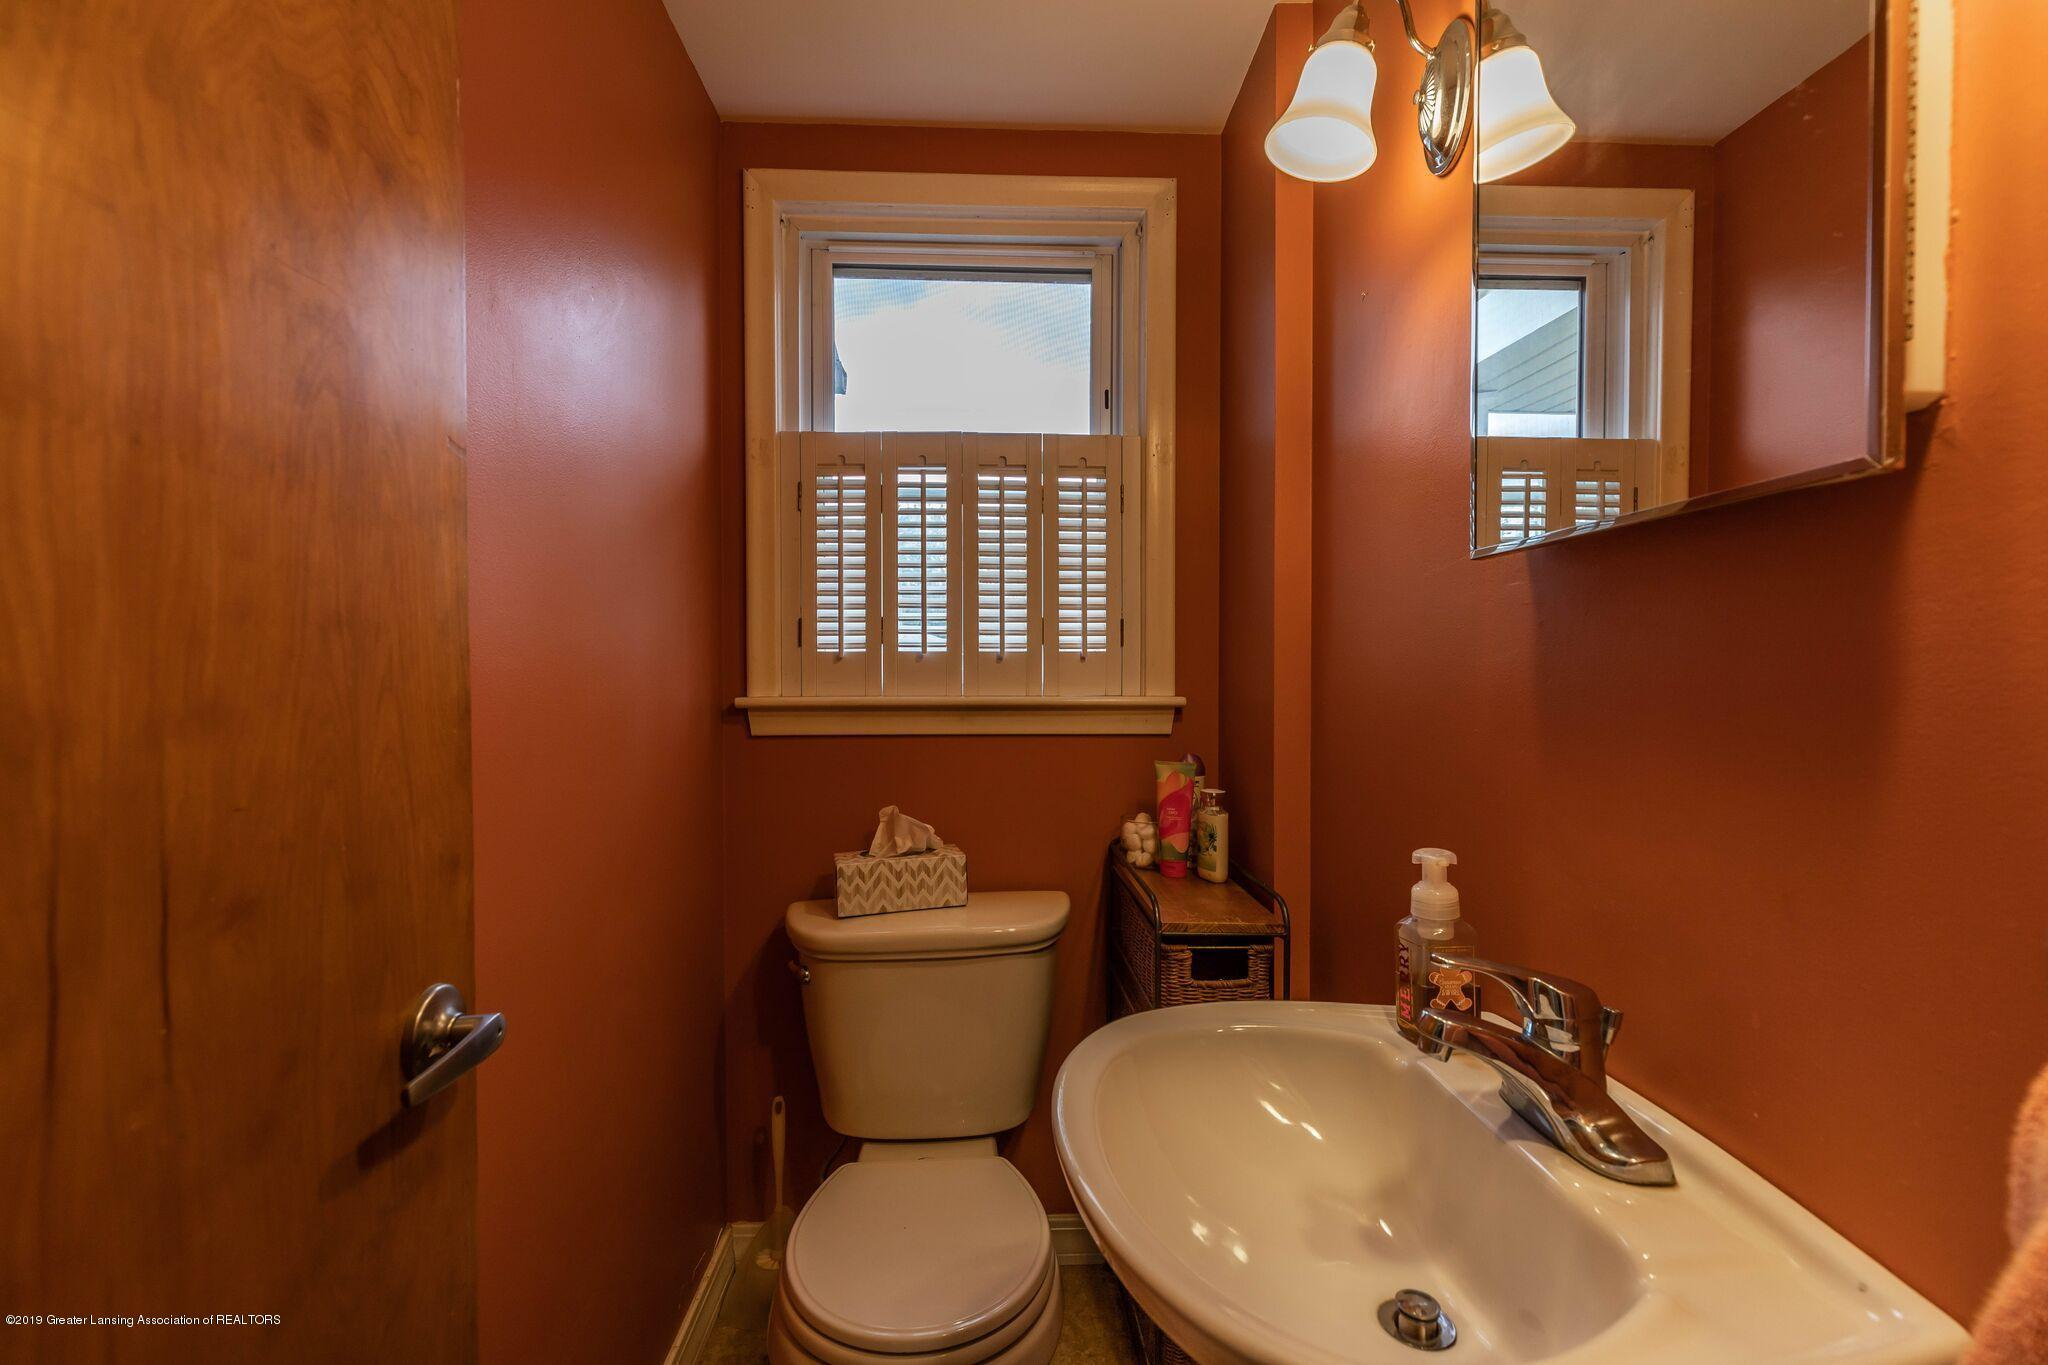 1211 W Thomas L Pkwy - 1/2 bath - 7